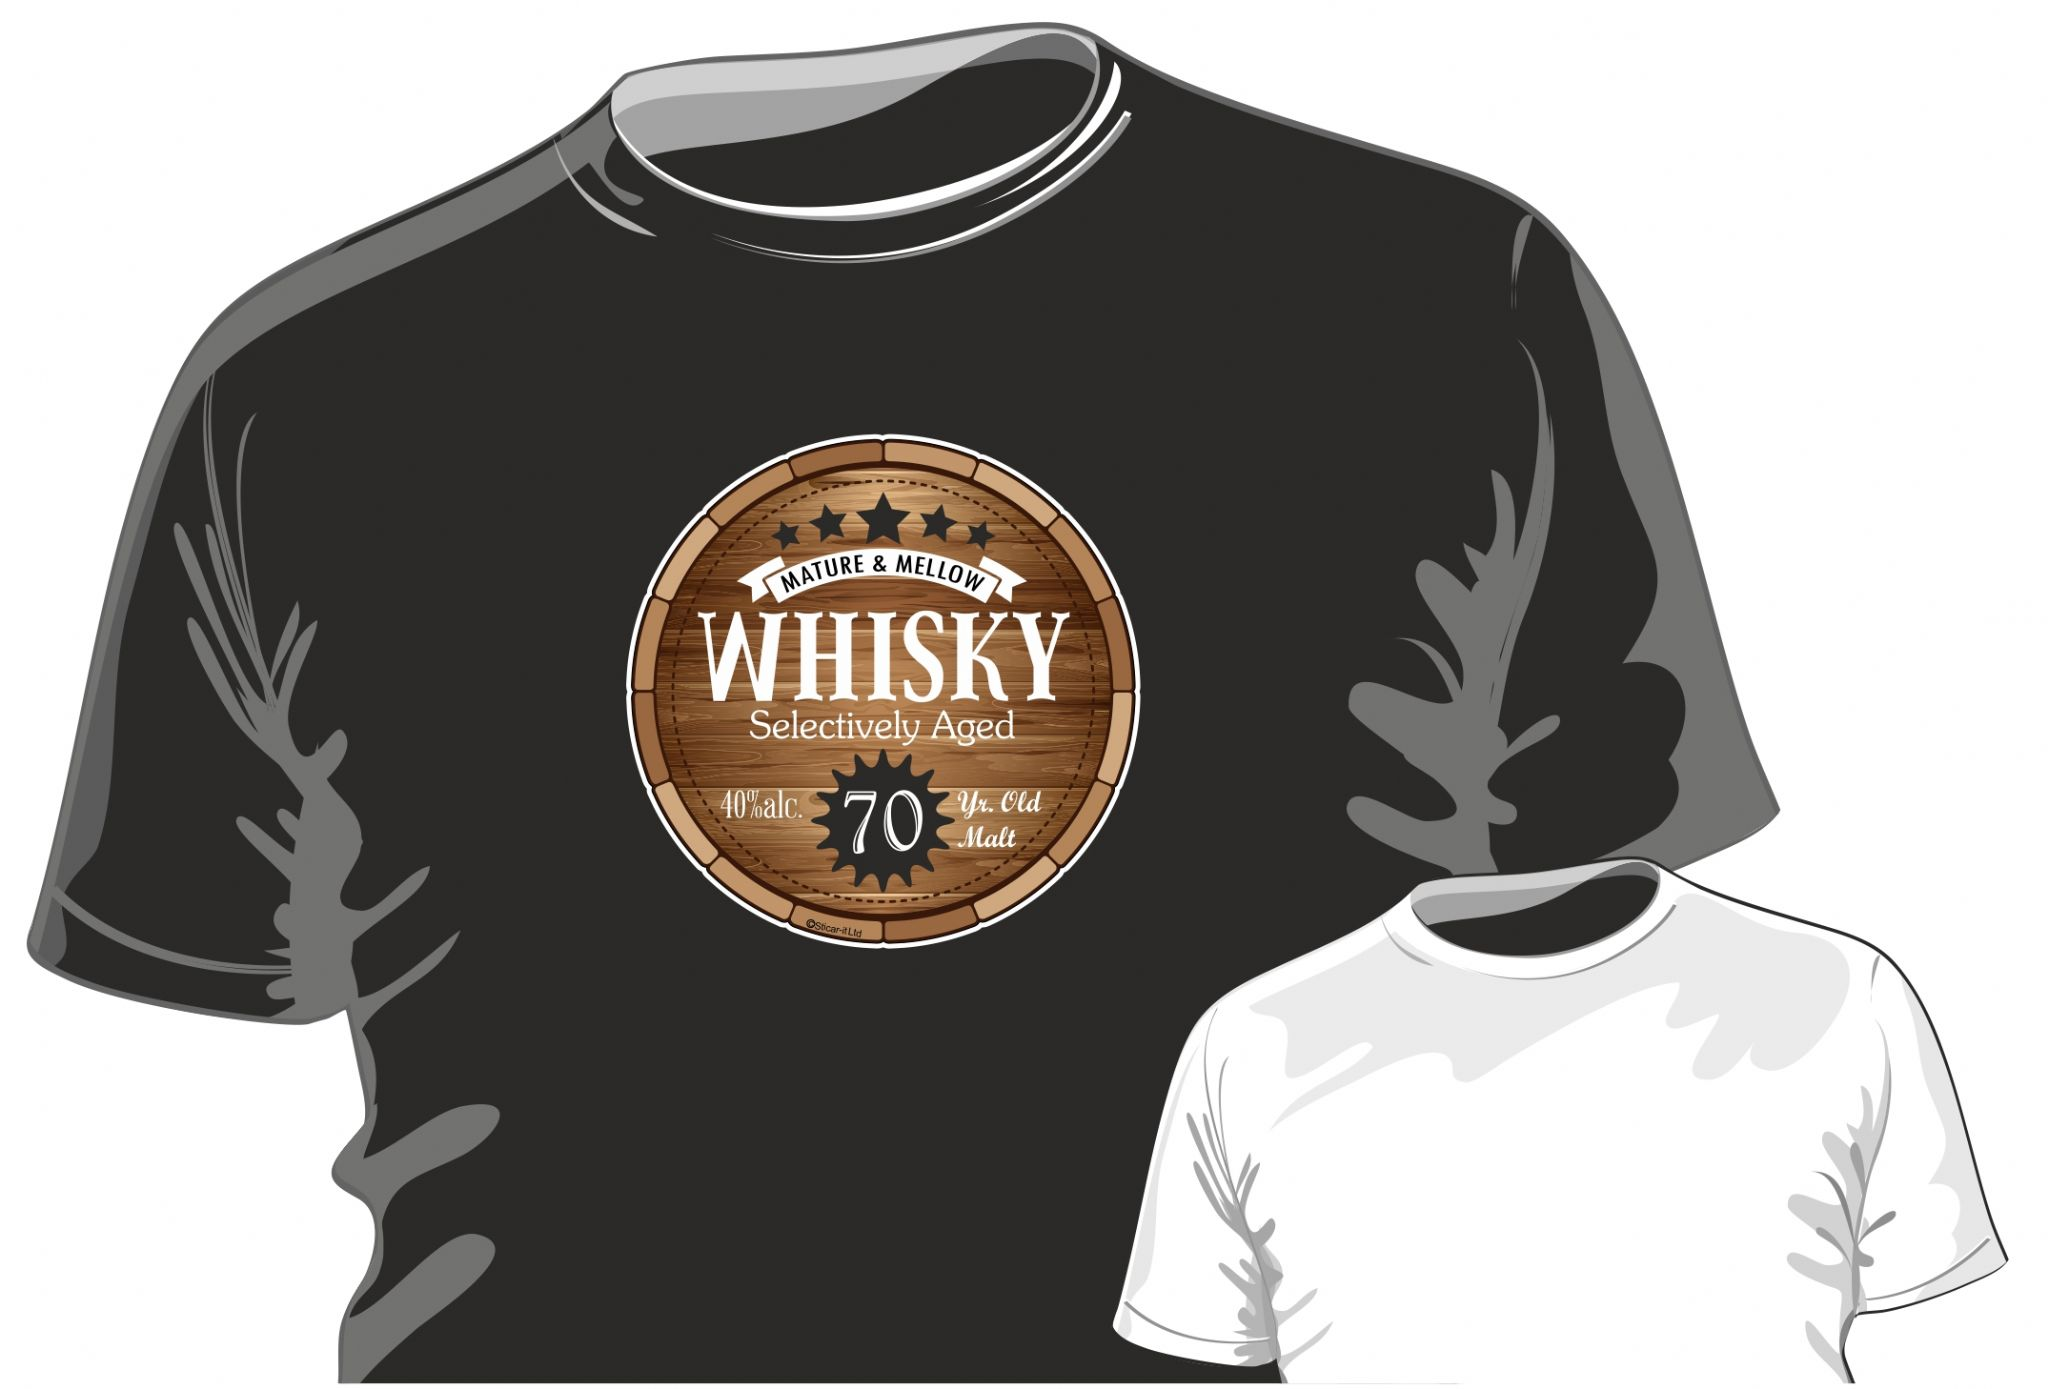 f8fd04e60 funny-70-year-old -malt-whisky-barrel-motif-for-70th-birthday-occasion-anniversary-gift-mens-or-ladyfit- t-shirt-14971-p.jpg